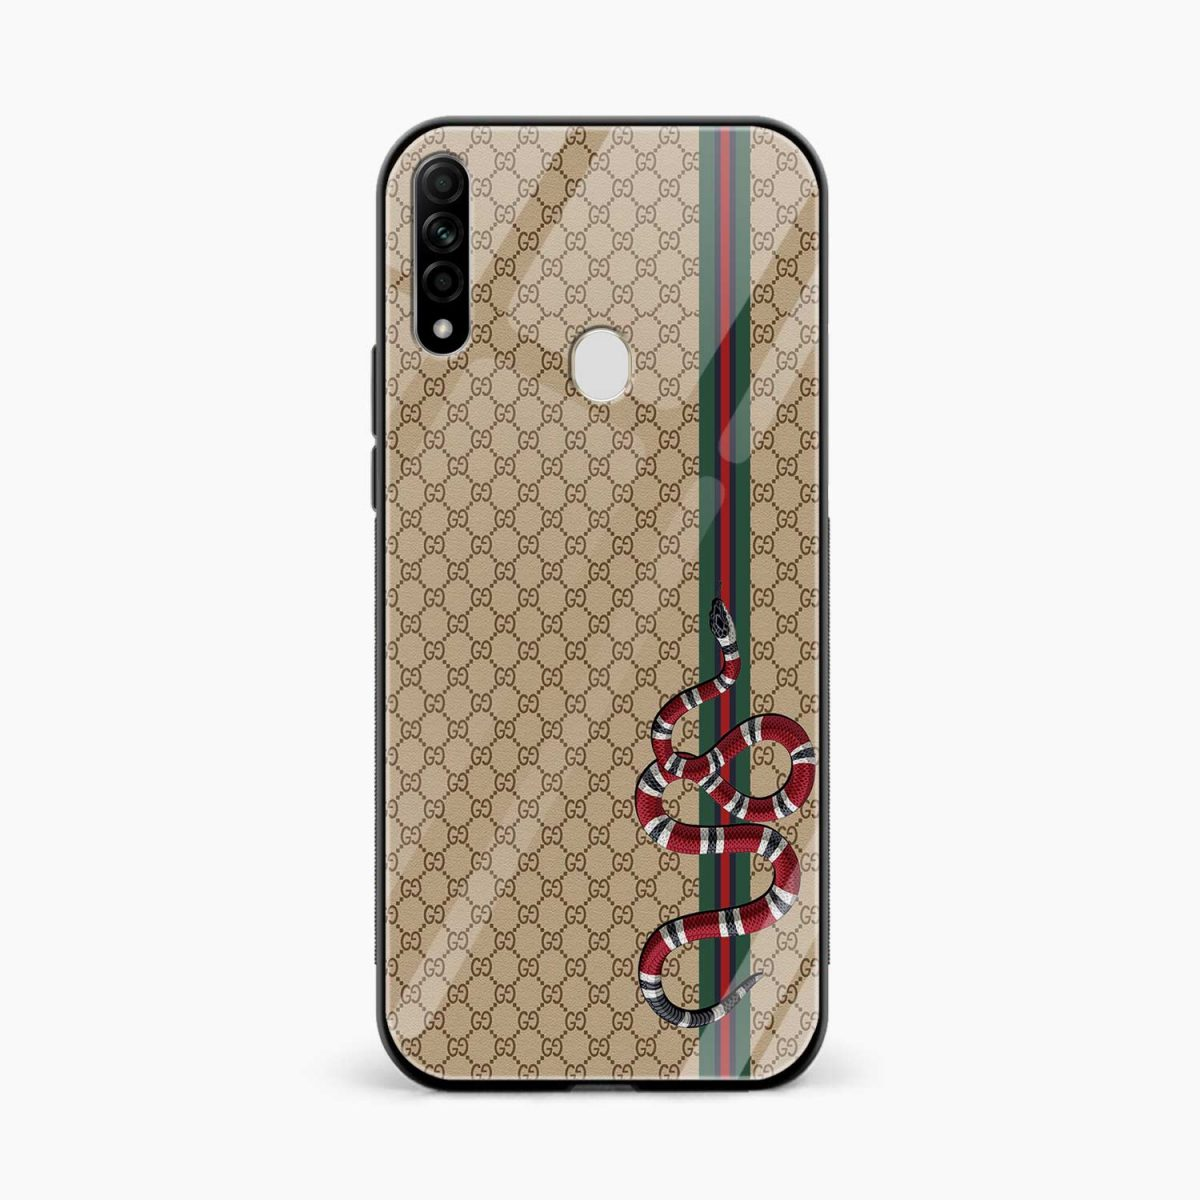 gucci snake pattern front view oppo a31 back cover